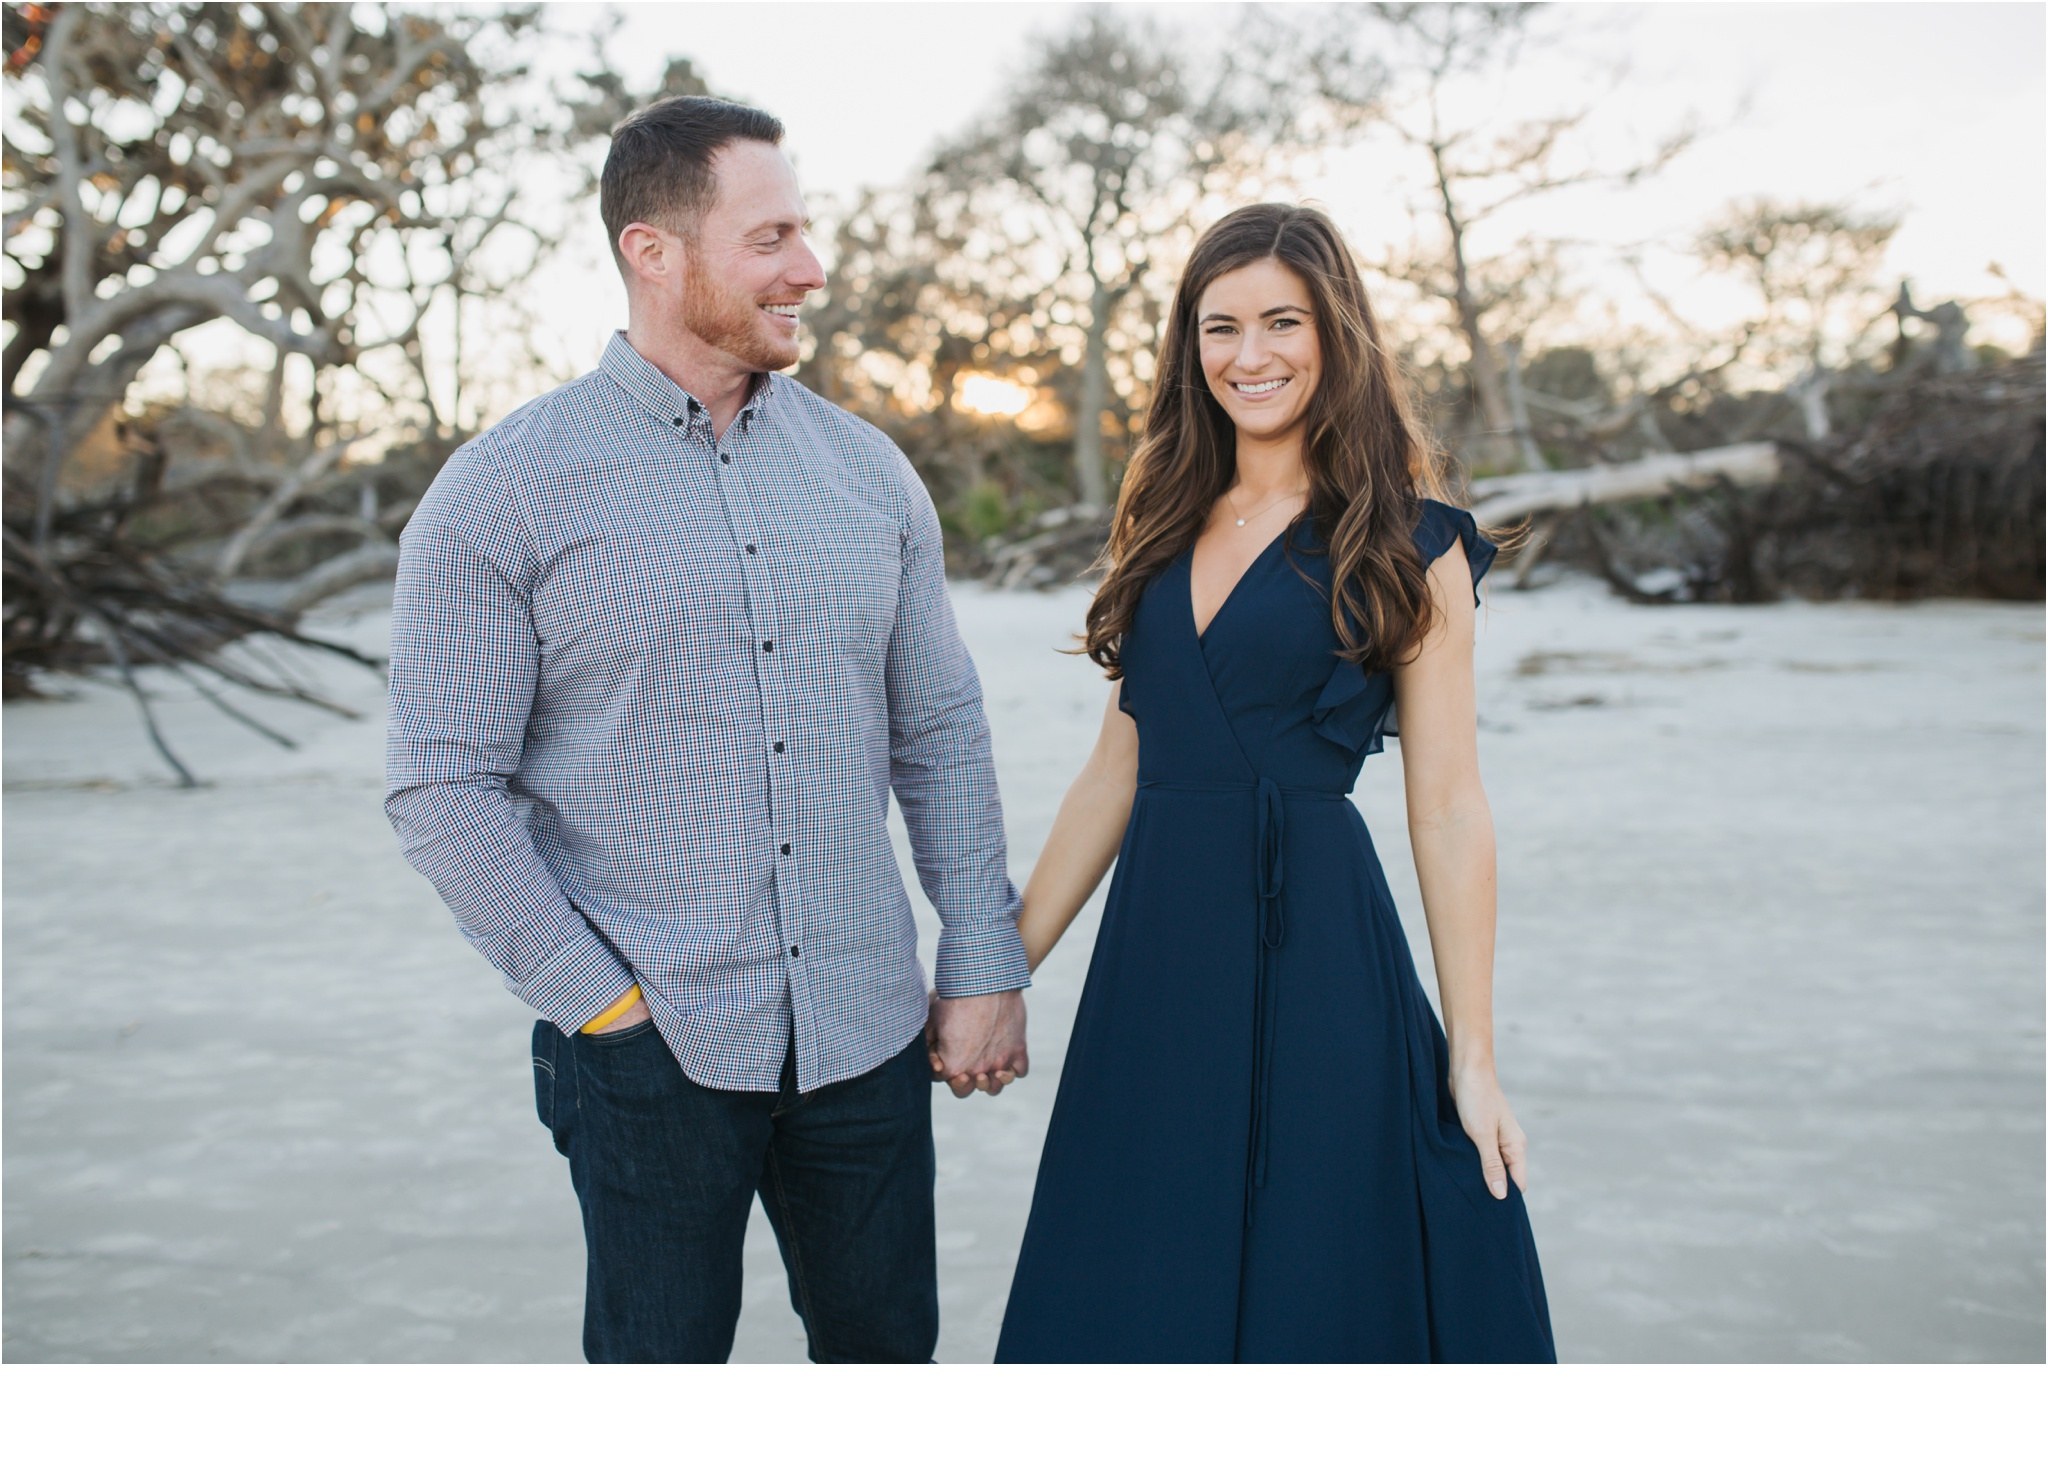 Rainey_Gregg_Photography_St._Simons_Island_Georgia_California_Wedding_Portrait_Photography_1551.jpg